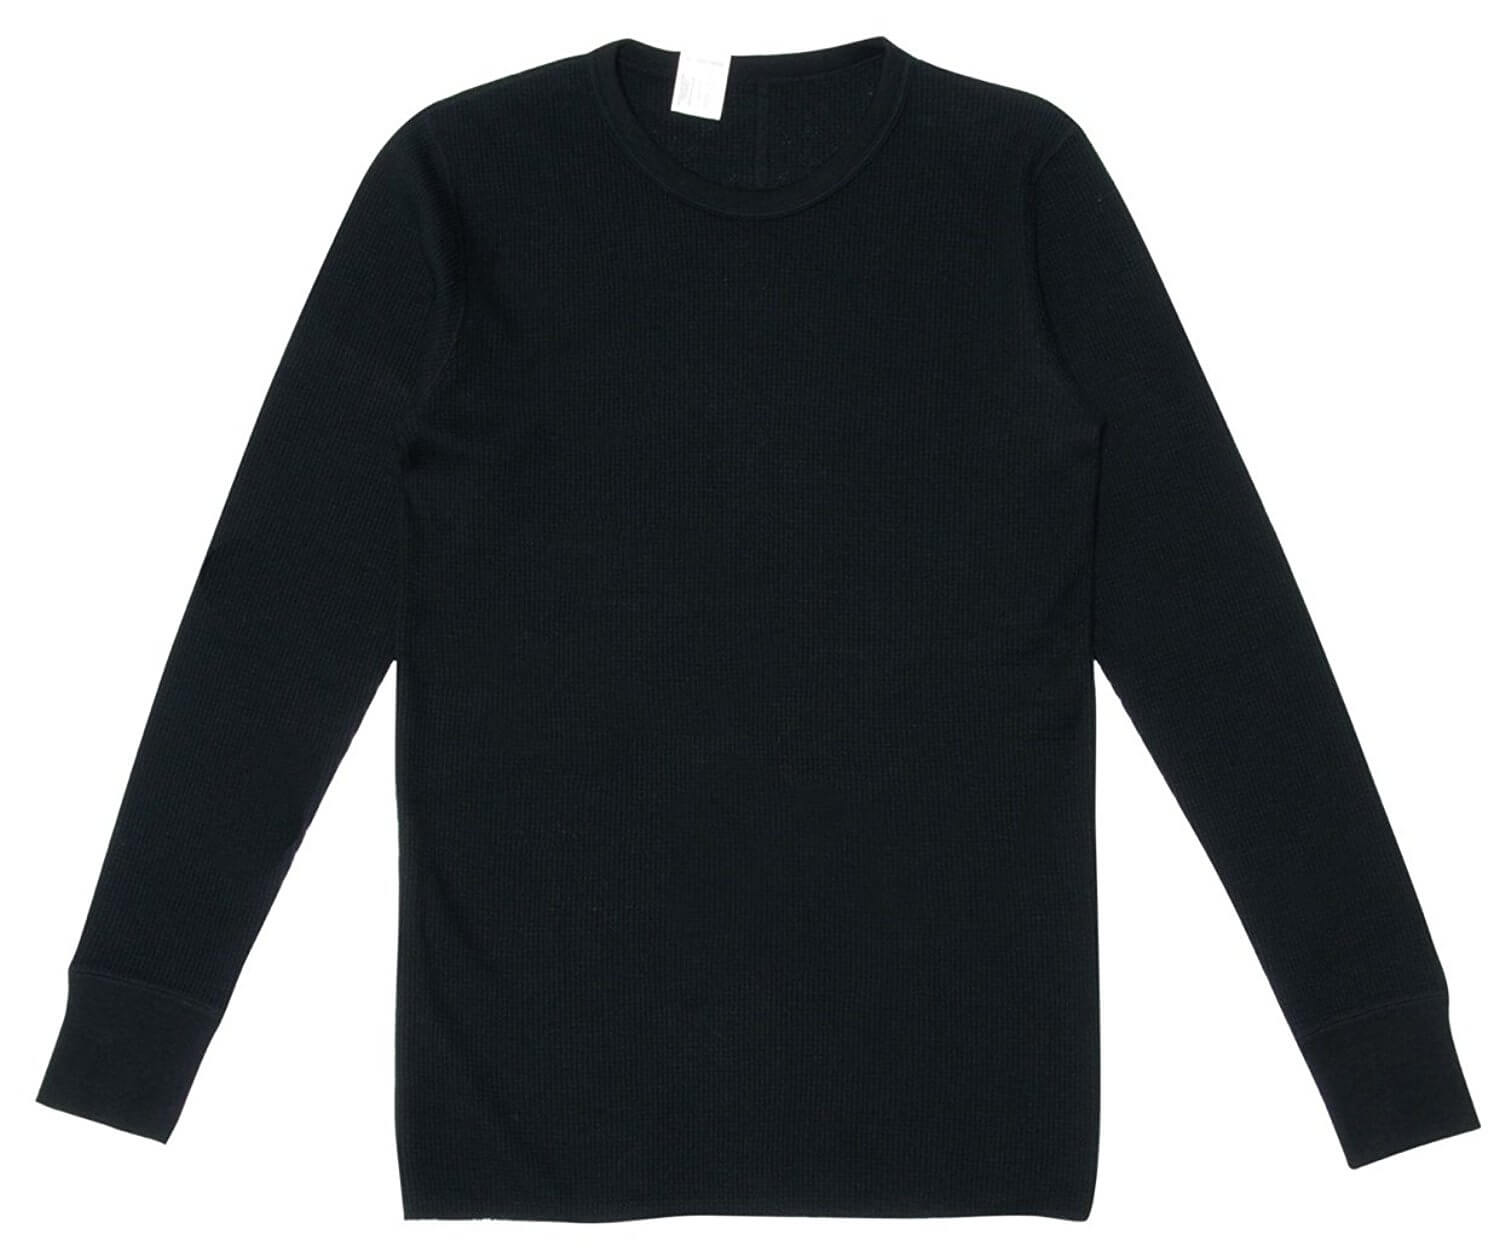 N.HOOLYWOOD UNDER SUMMIT WEAR 5 RCH CREW NECK LONG SLEEVE